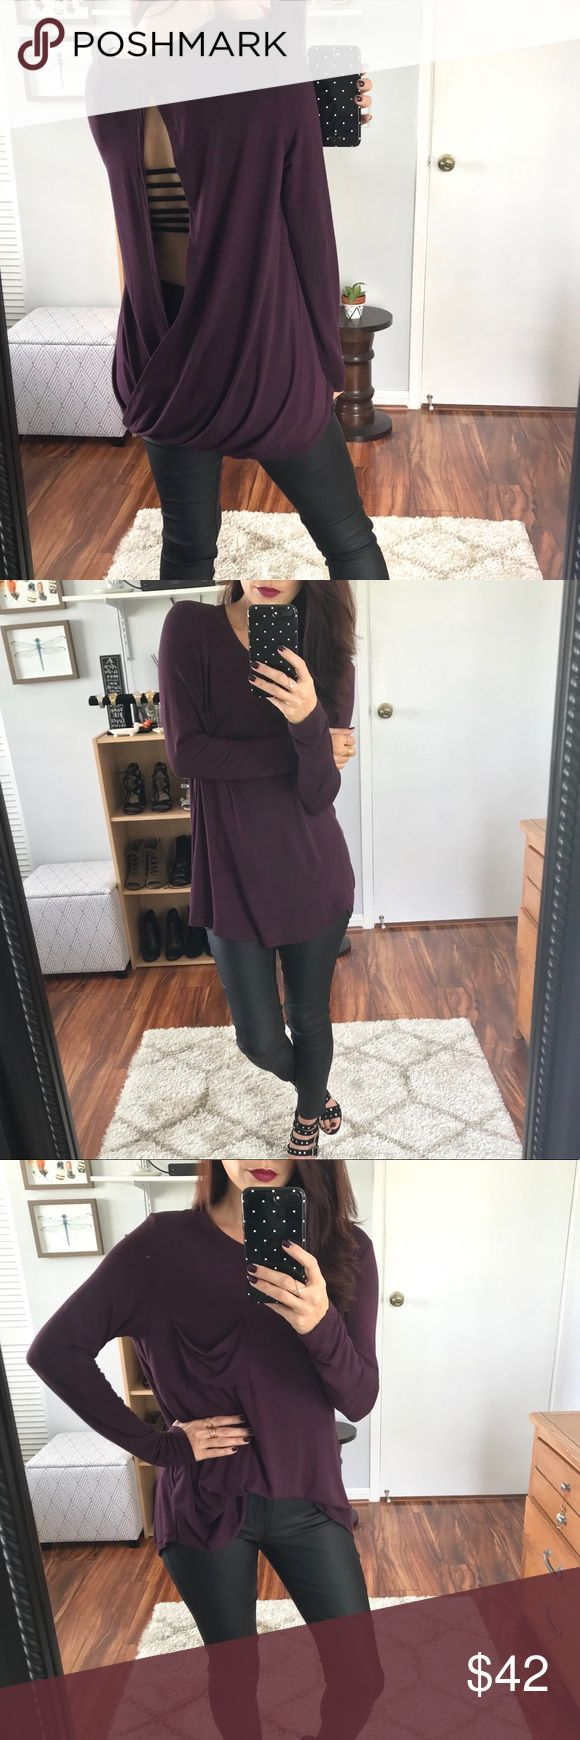 🆕 Perry Soft Tulip Back LS Tunic - Dark Plum A super soft basic LS with a twist.  Pretty tulip design in back, with a draped pocket in front.  I paired mine with a strappy back bralette.  Would also look great paired with a cami for more coverage.  Available in Olive, Dark Plum, & Caramel.  Modeling size Small.  Price firm unless bundled▫️10% off 2+ items. Tops Tunics